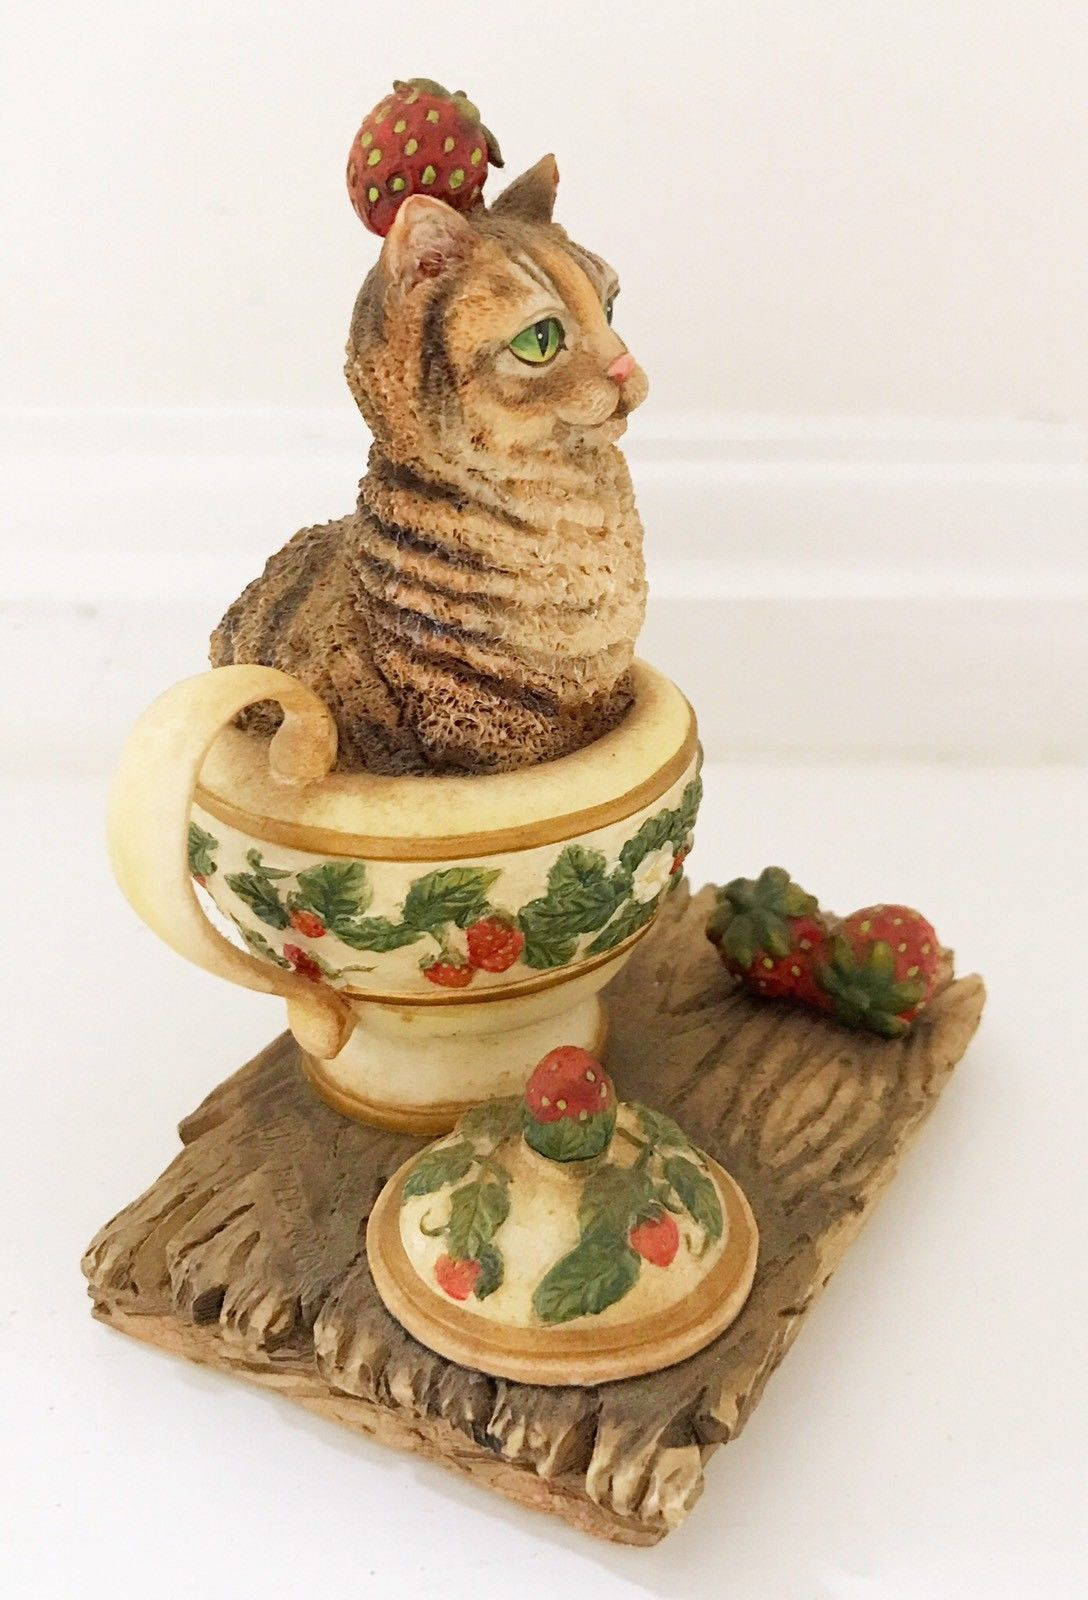 Curious Cats 'Strawberry Tea' Figurine Lang & Wise 2000